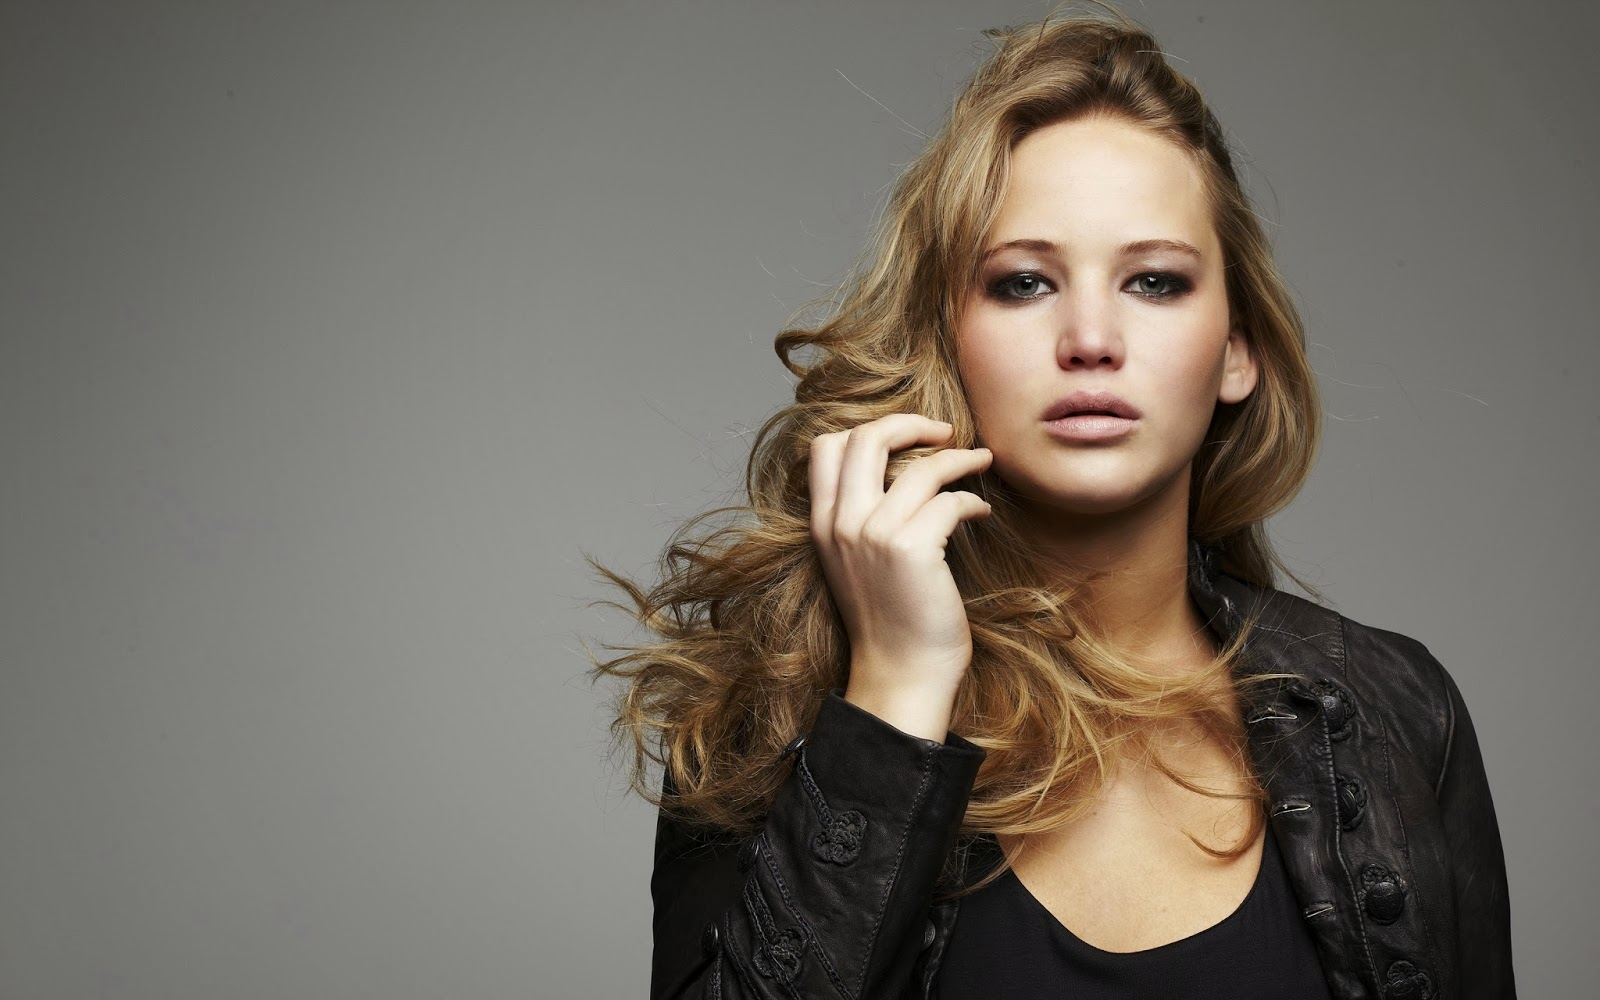 jennifer lawrence hd photo - photo #11